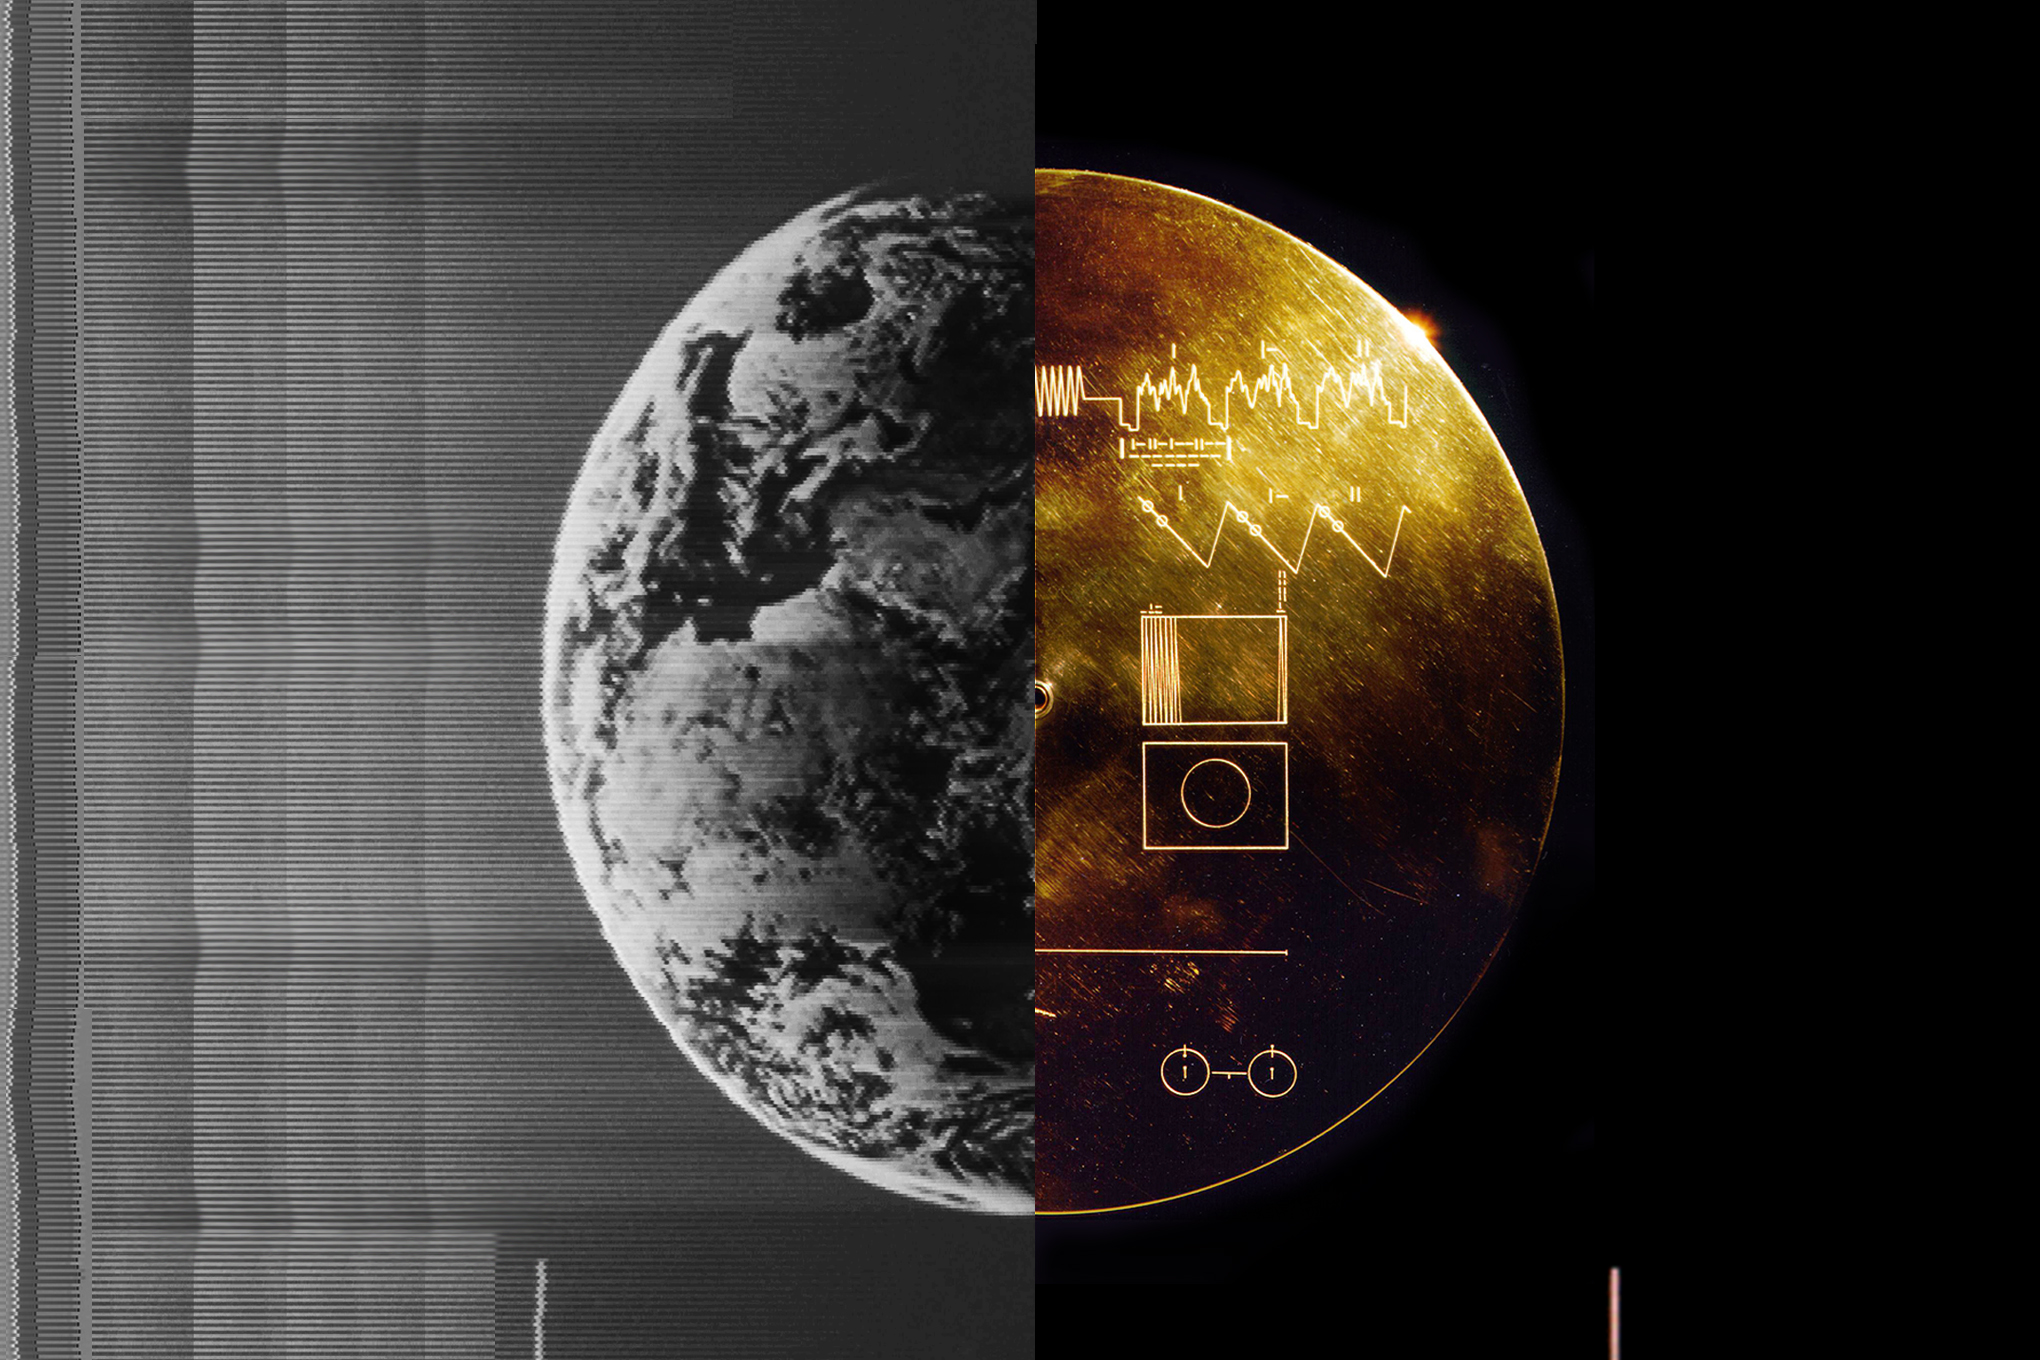 Decoding images from the Golden Record - The Verge